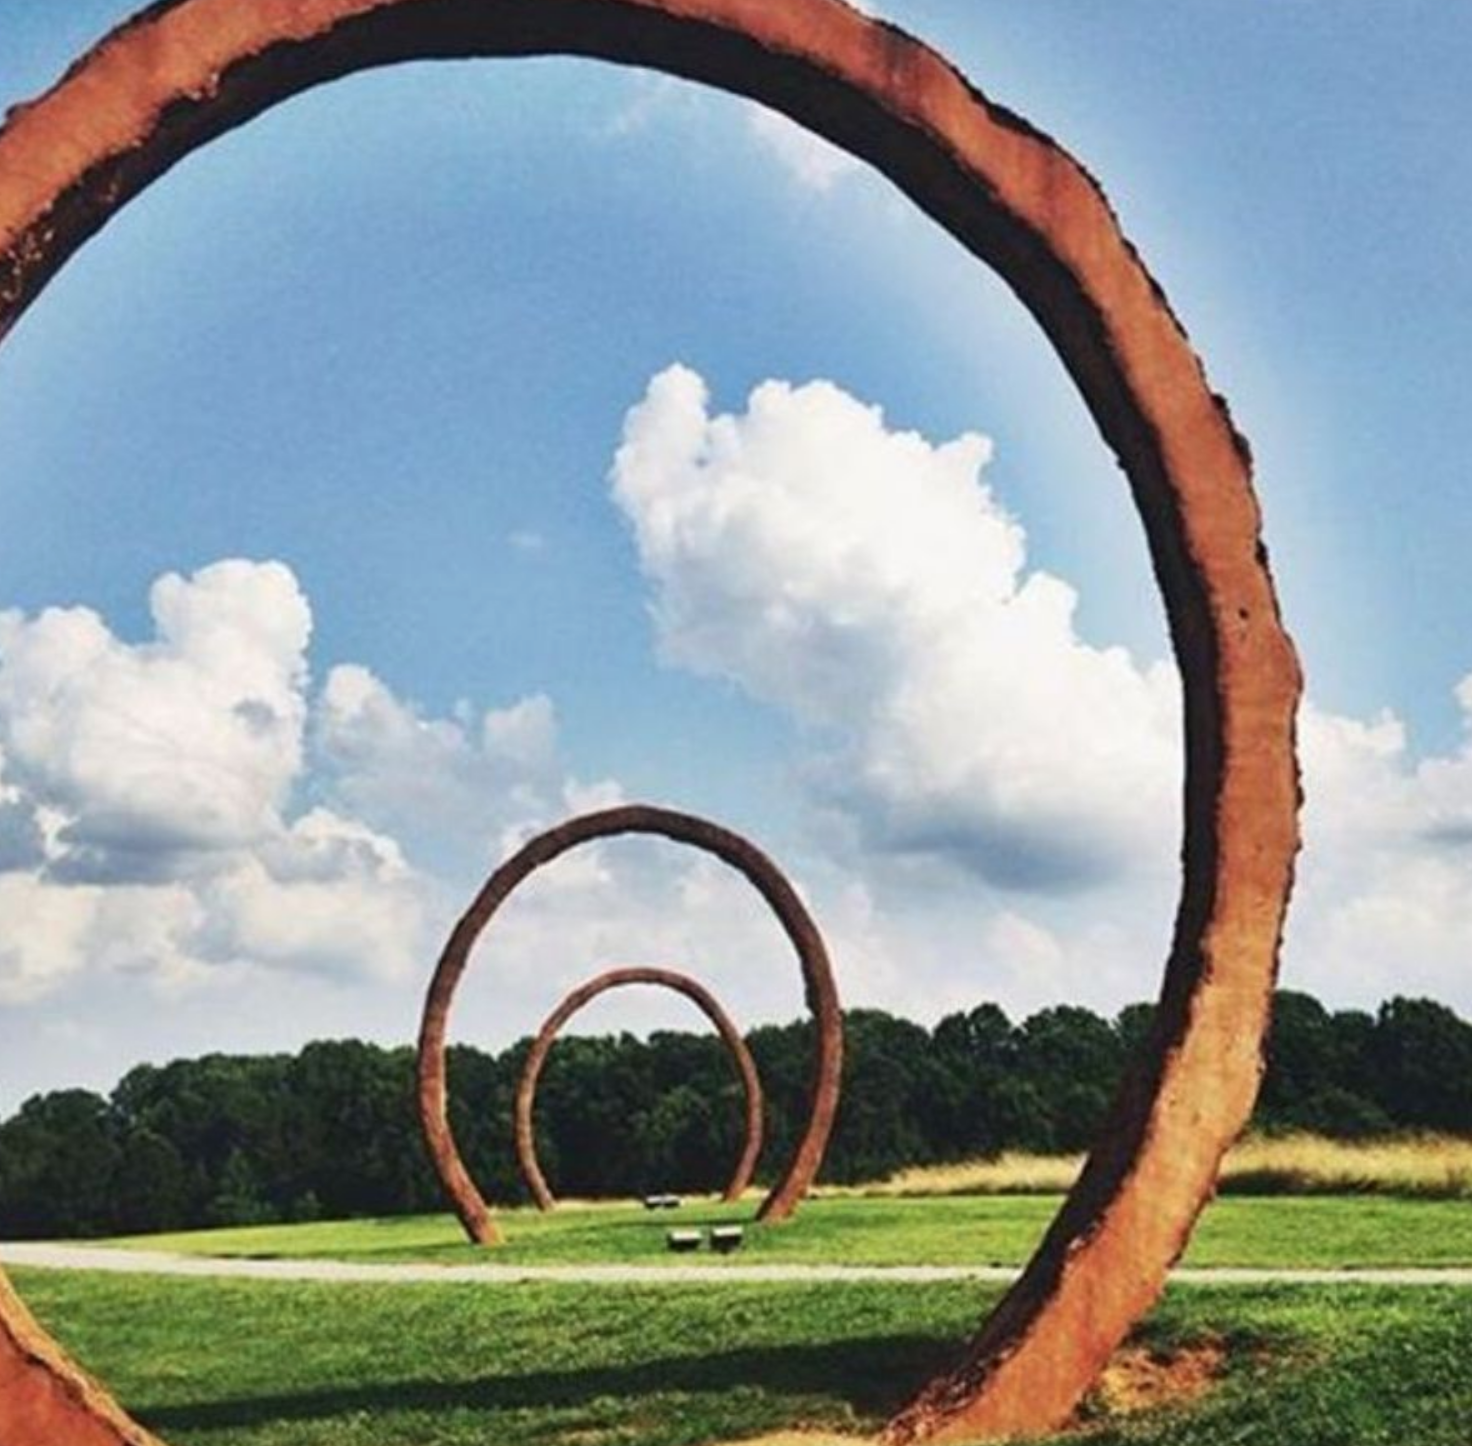 MASSIVE WORKS OF ART LINE THE GREENWAY BIKE TRAIL AT THE NORTH CAROLINA MUSEUM OF ART.